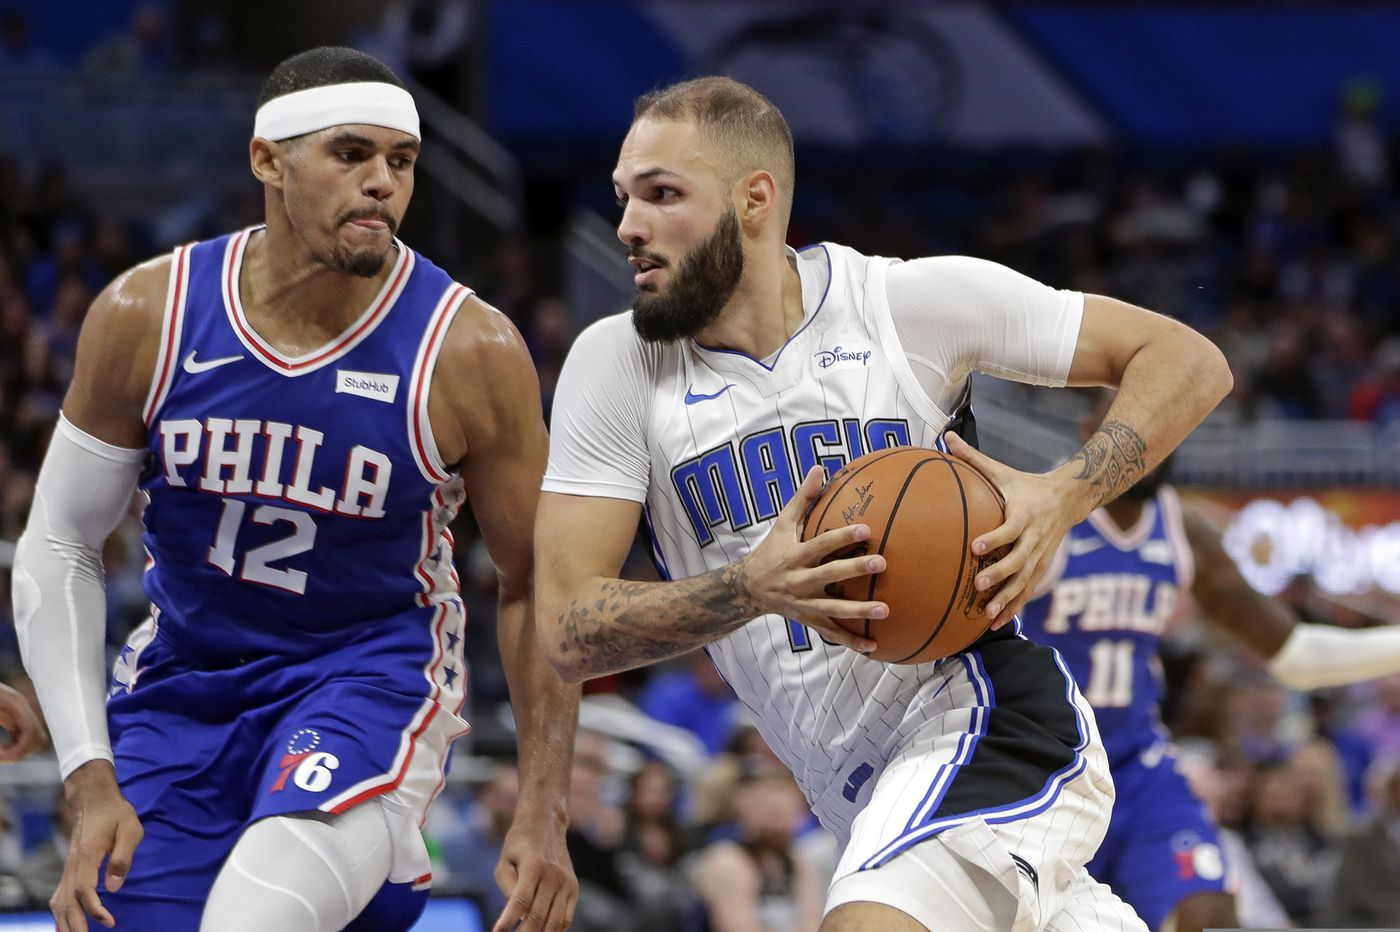 Sixers fall to Magic, 112-97, as Joel Embiid sits out game to rest